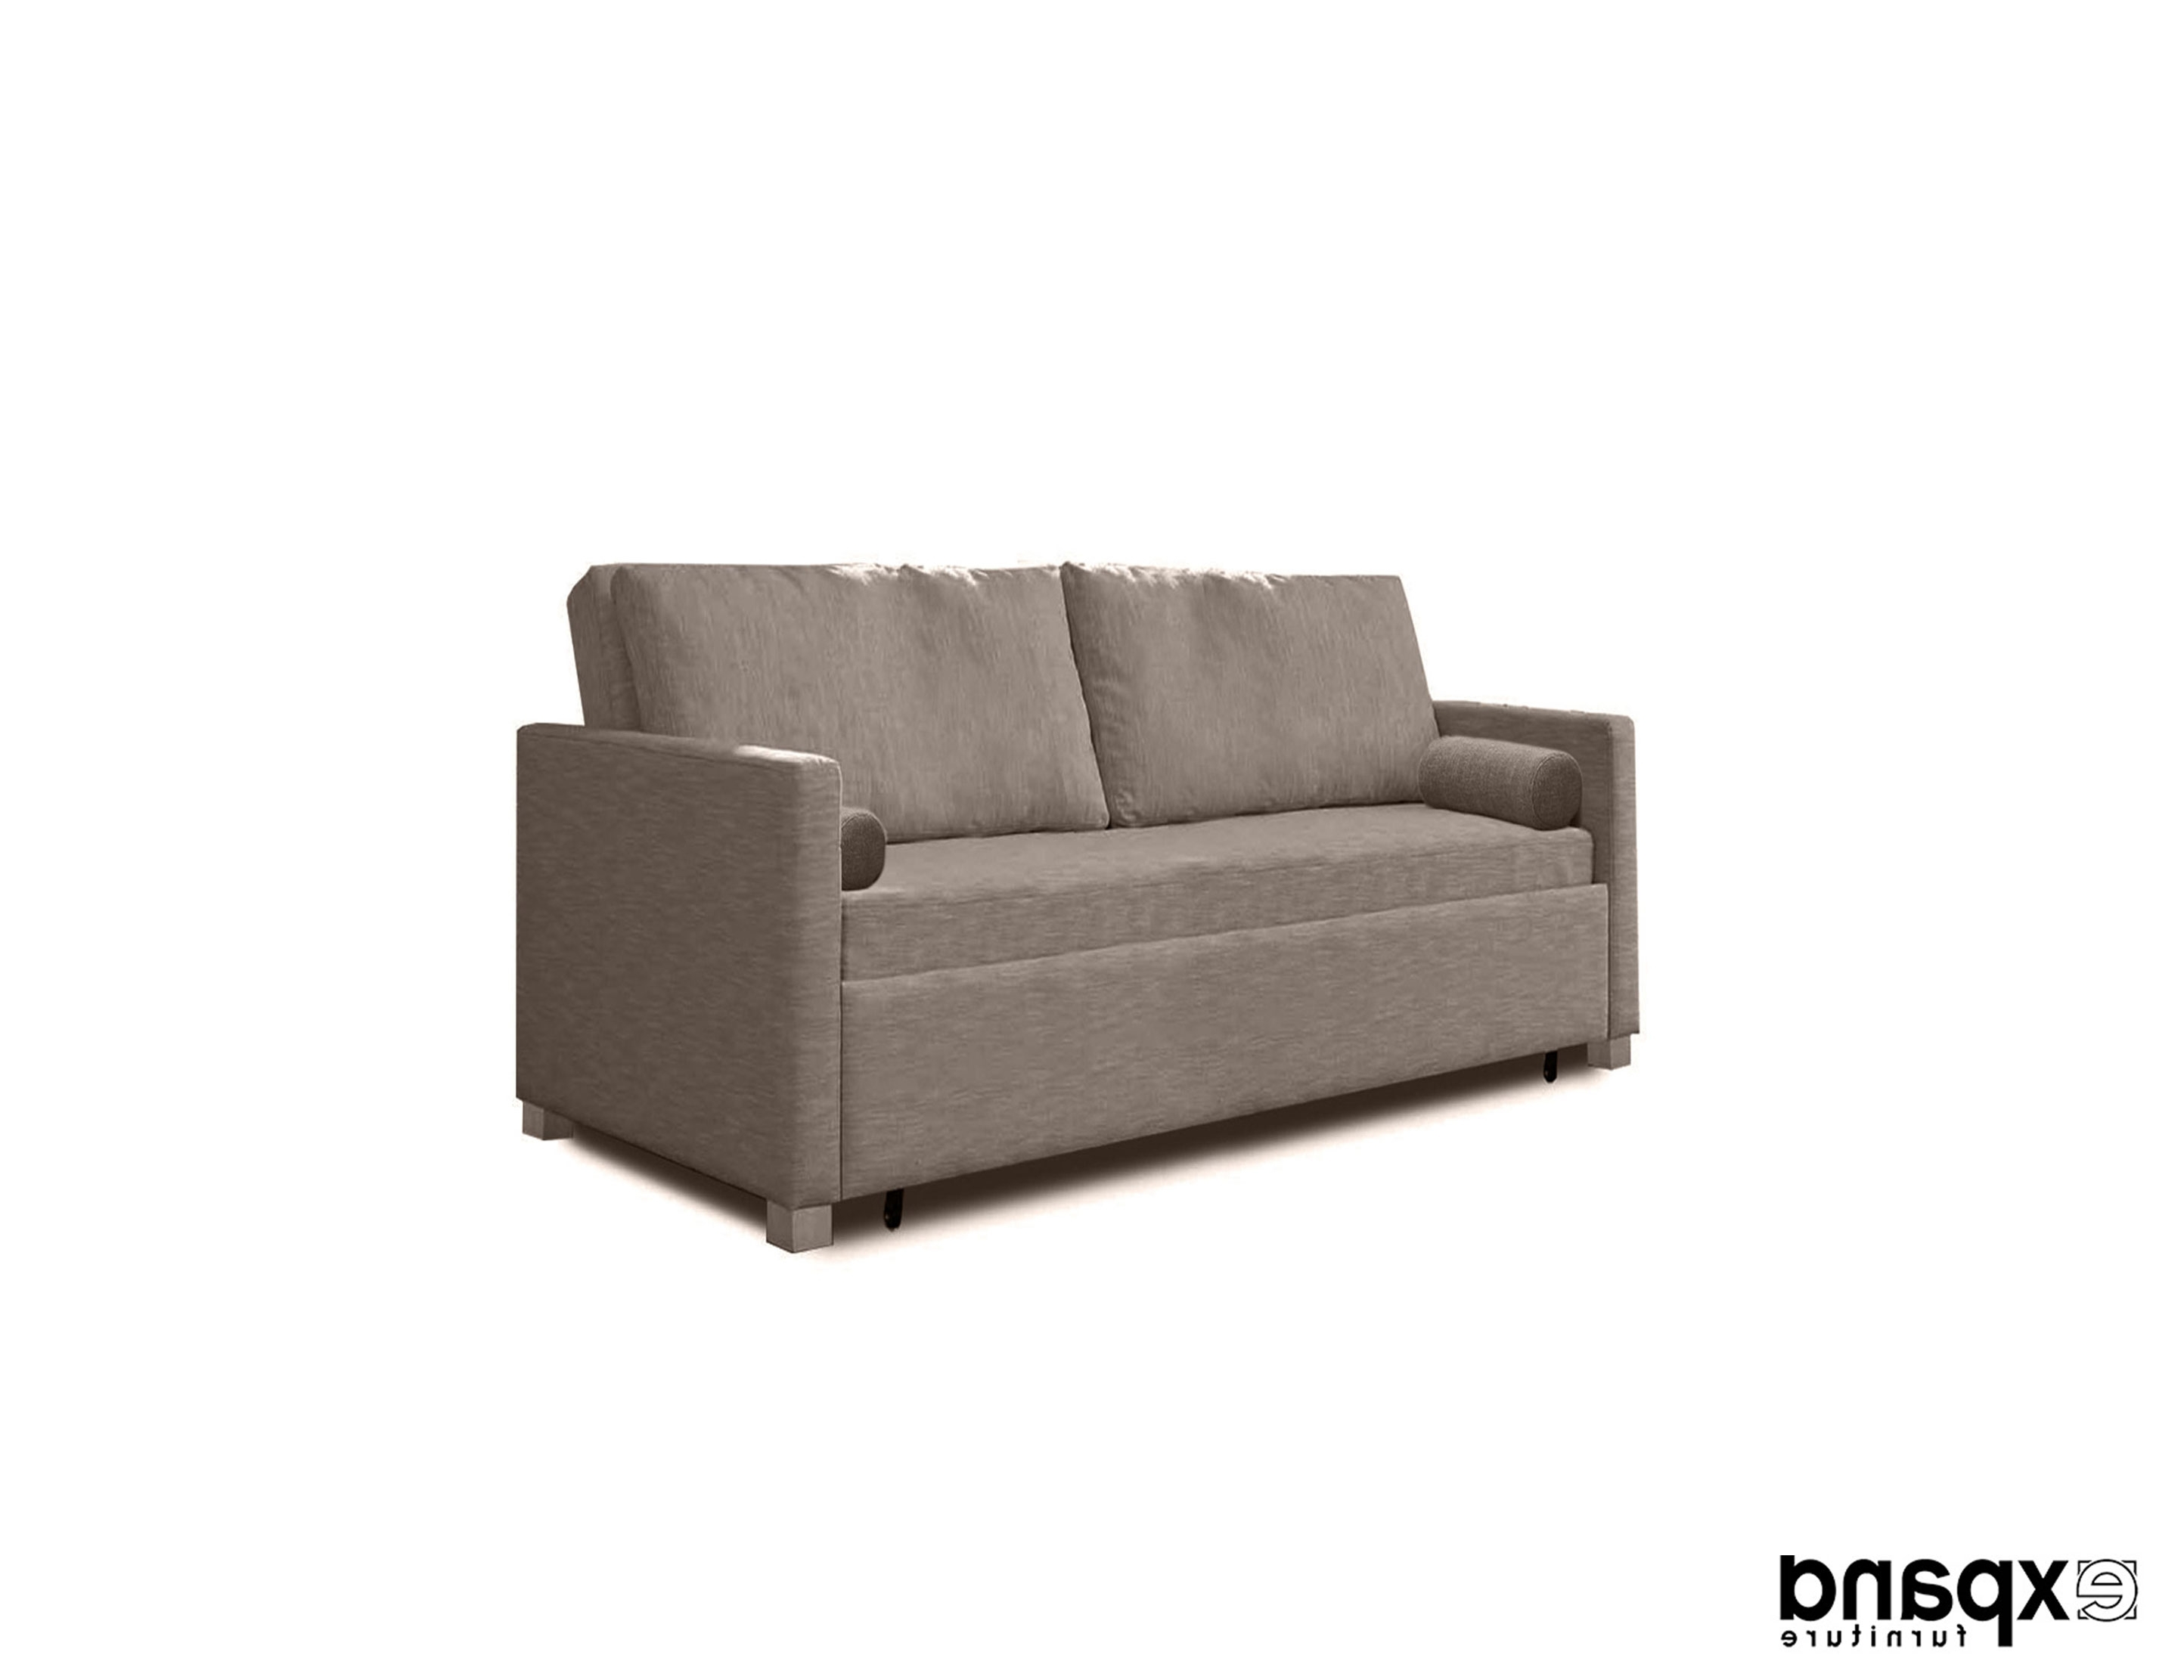 Most Popular Chairs With A Half Chaise With Convertible Chair : Chairs Chaise Lounge Chairs For Sale Living (View 11 of 15)